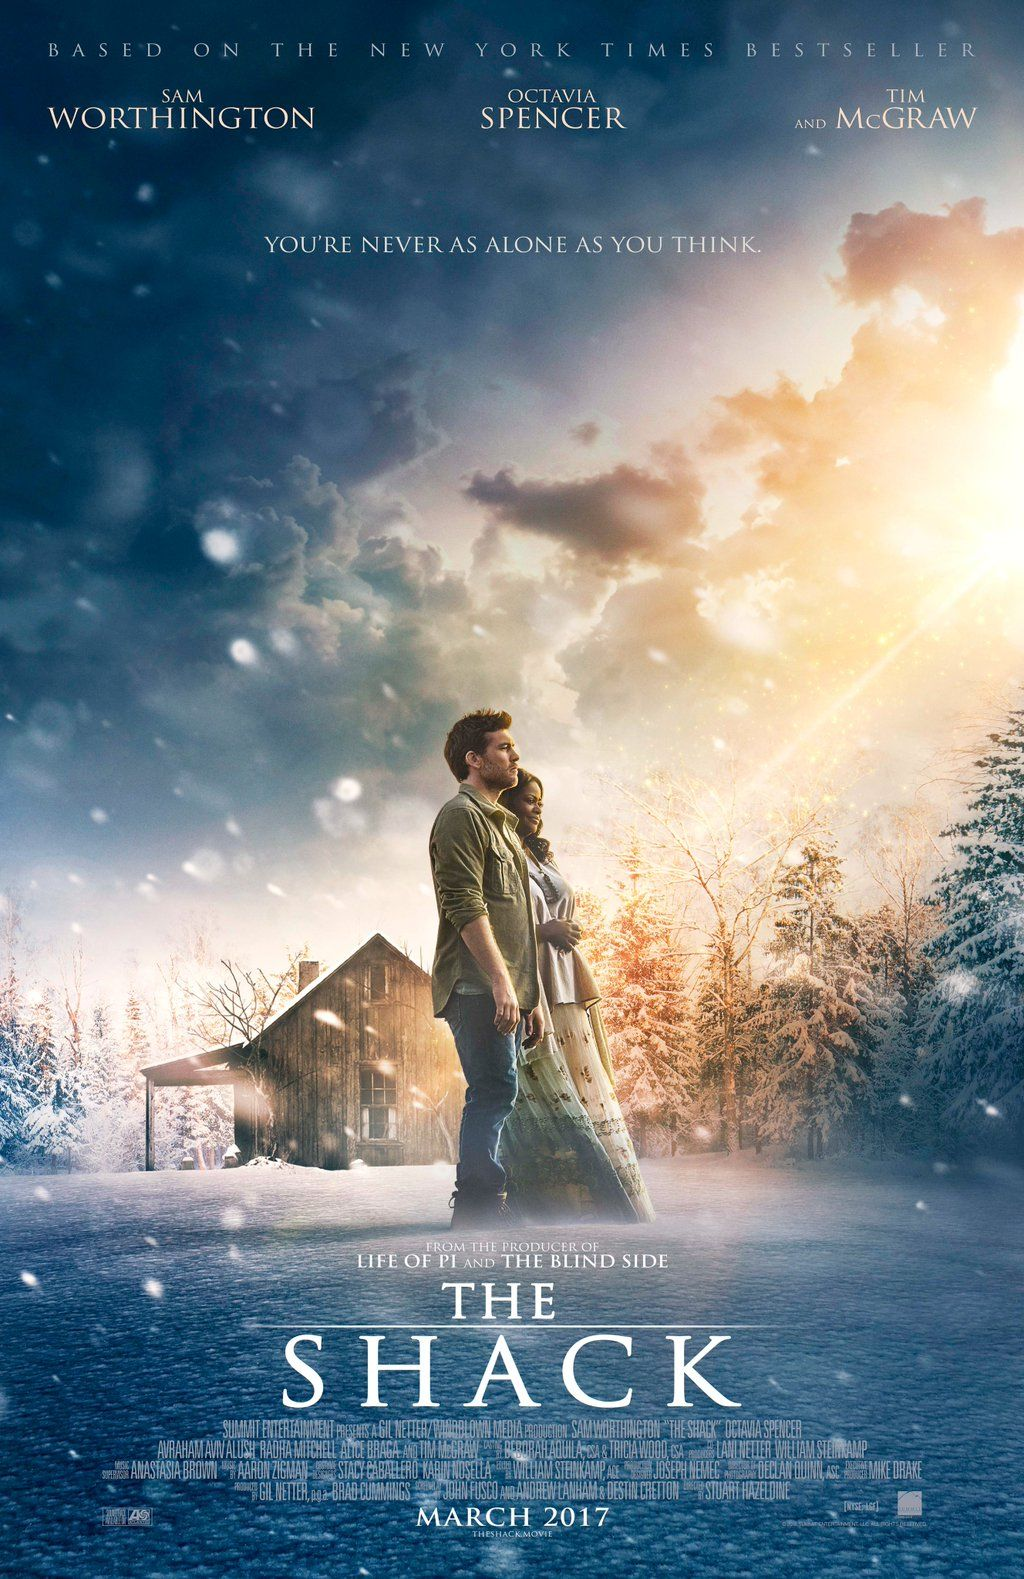 Octavia Spencer As God In First Trailer For The Shack Streaming Movies Free Christian Movies The Shack 2017